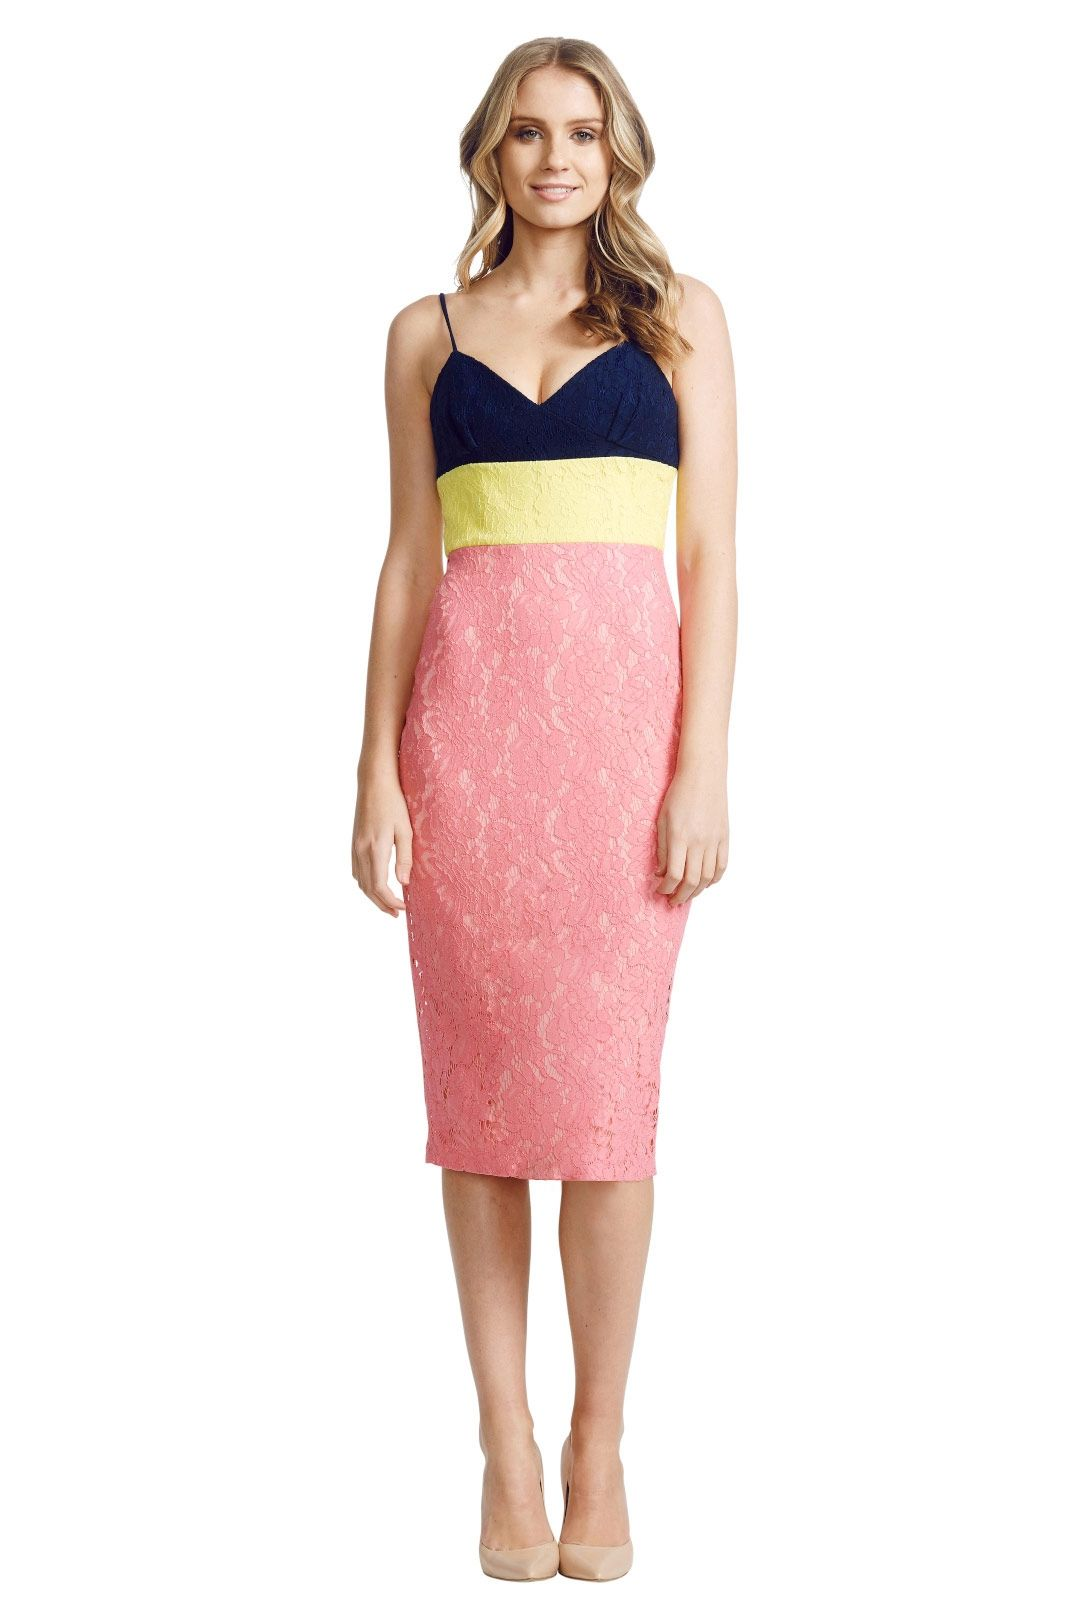 Alex Perry - Linda Dress - Pink - Front